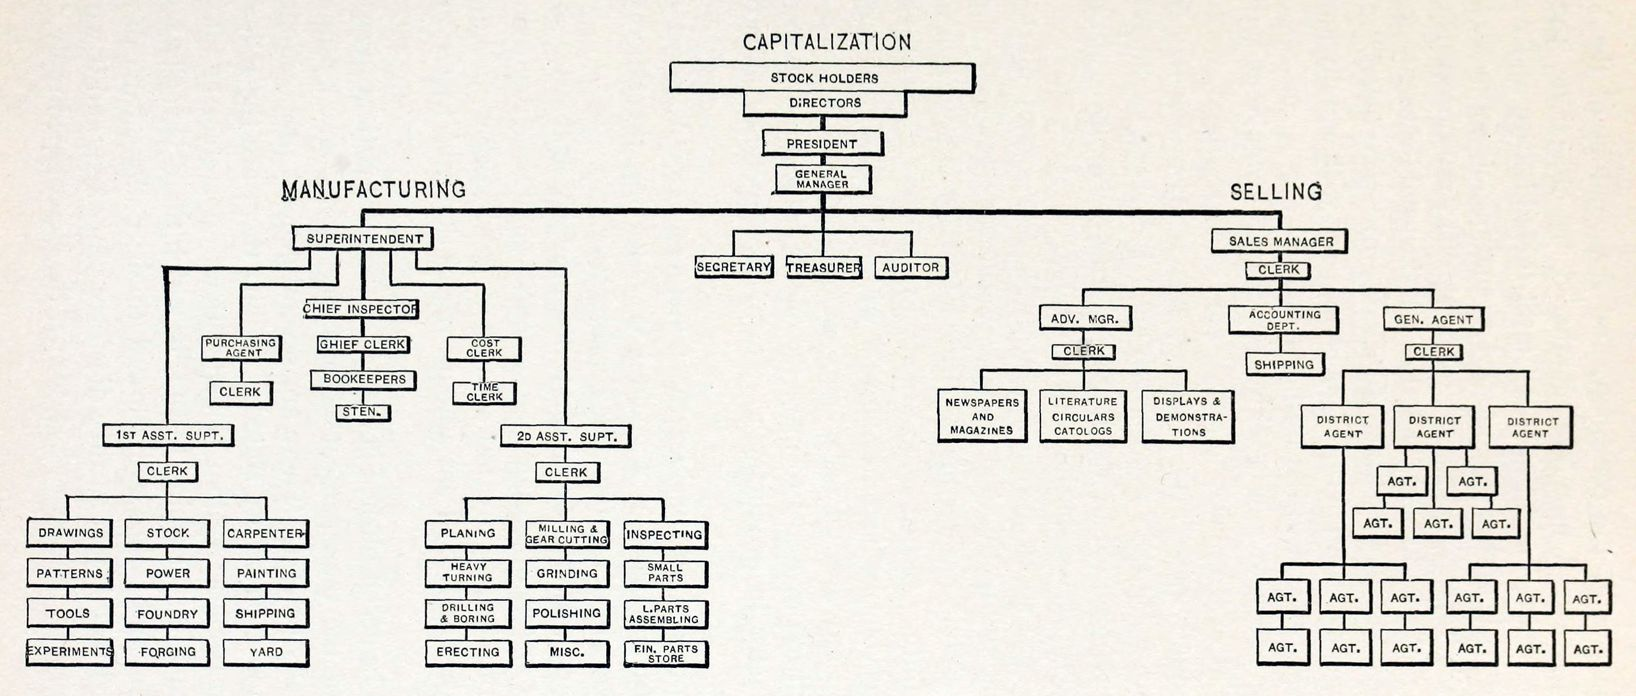 Manufacturing Organizational Chart: Graphic Chart showing the System of Organization and ,Chart